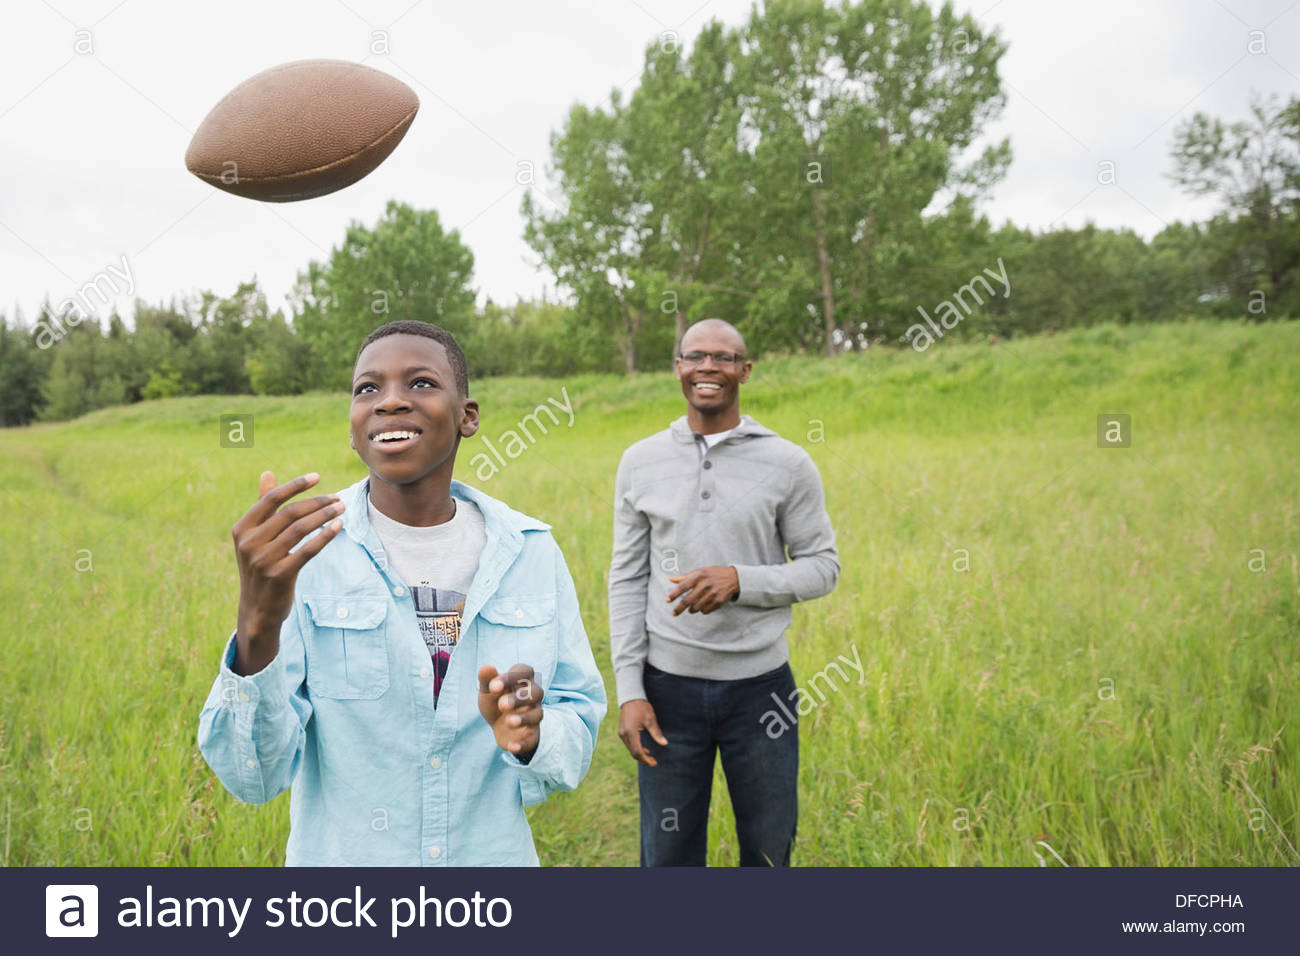 Father and son playing American football outdoors Stock Photo